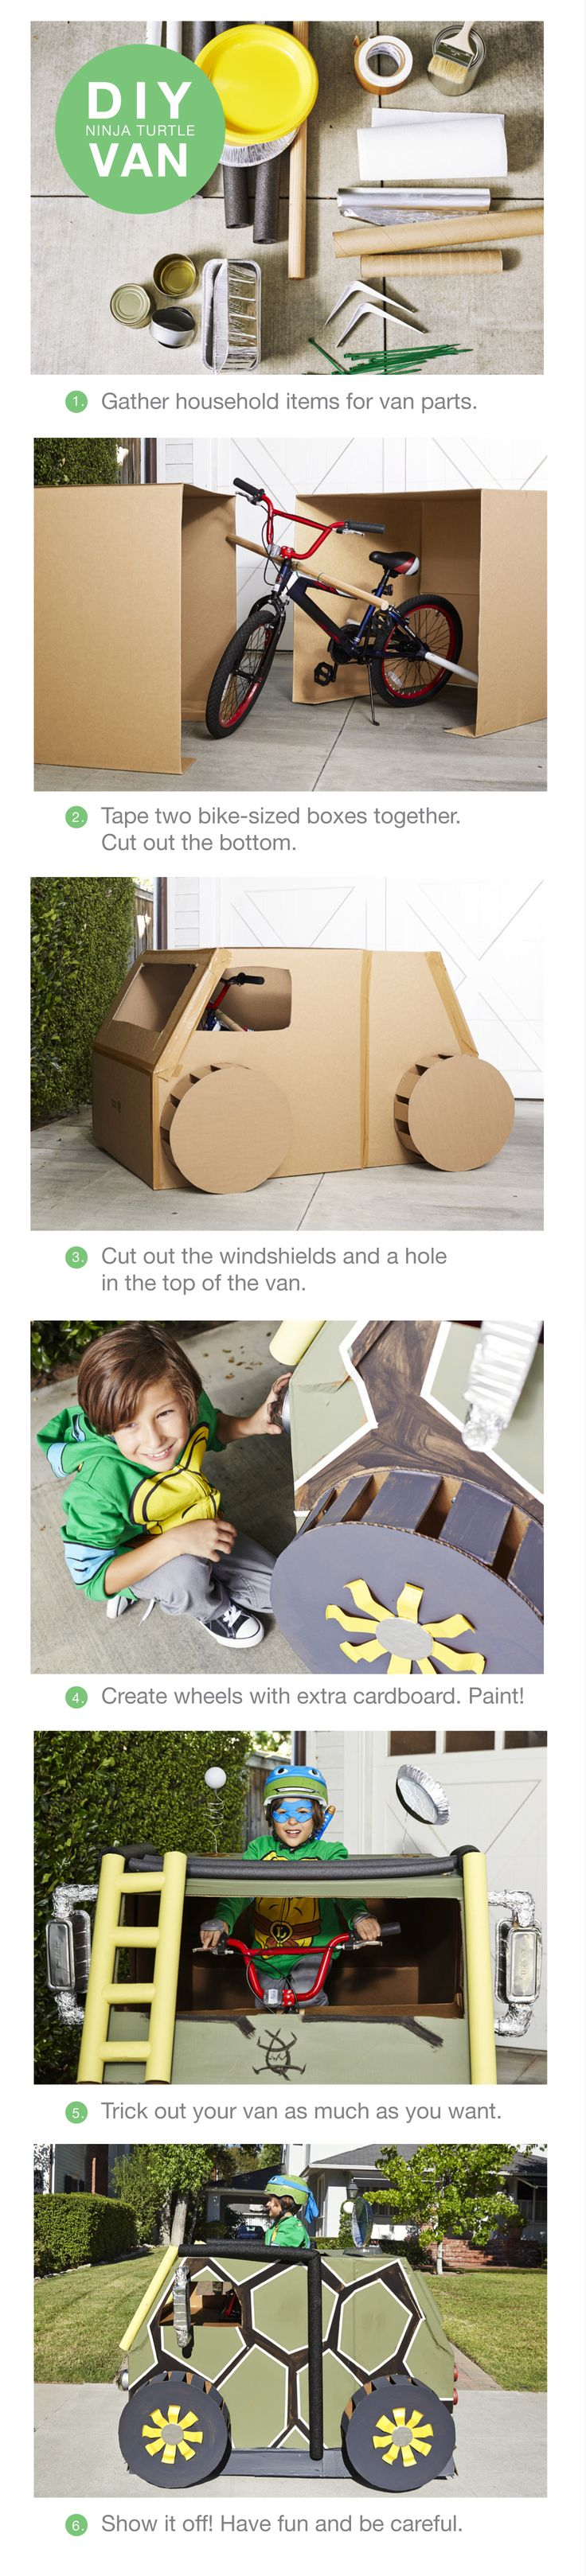 The ultimate weekend project for the most hardcore Teenage Mutant Turtles fans. Using things you find around the house you can make your kid an assault van every kid on the block will be talking about. Click to shop for all things Turtles at Target.